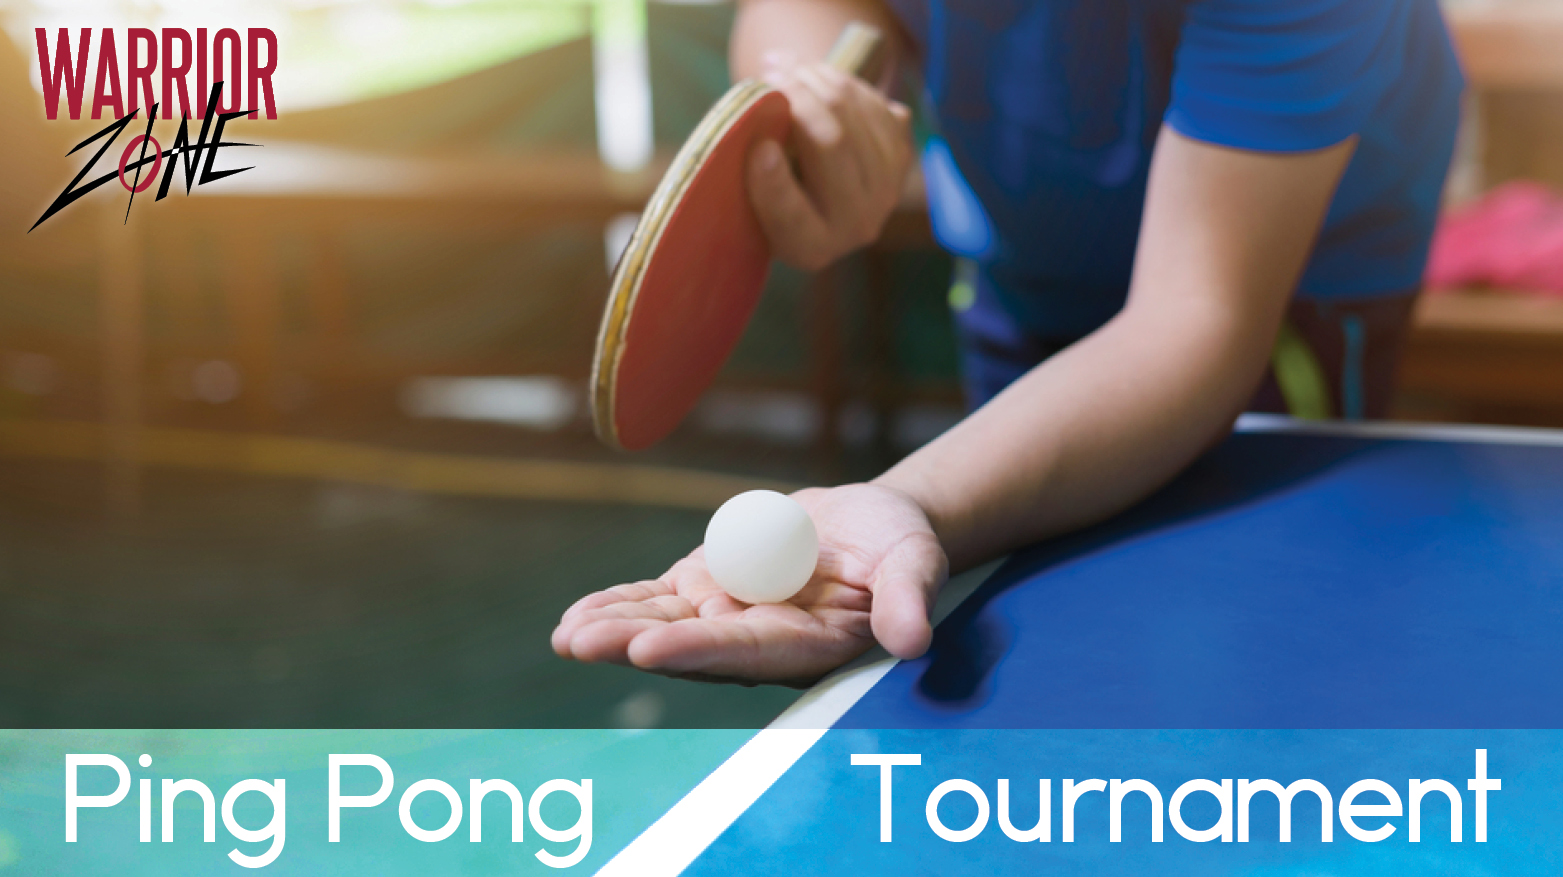 Ping Pong Tournament @ Warrior Zone